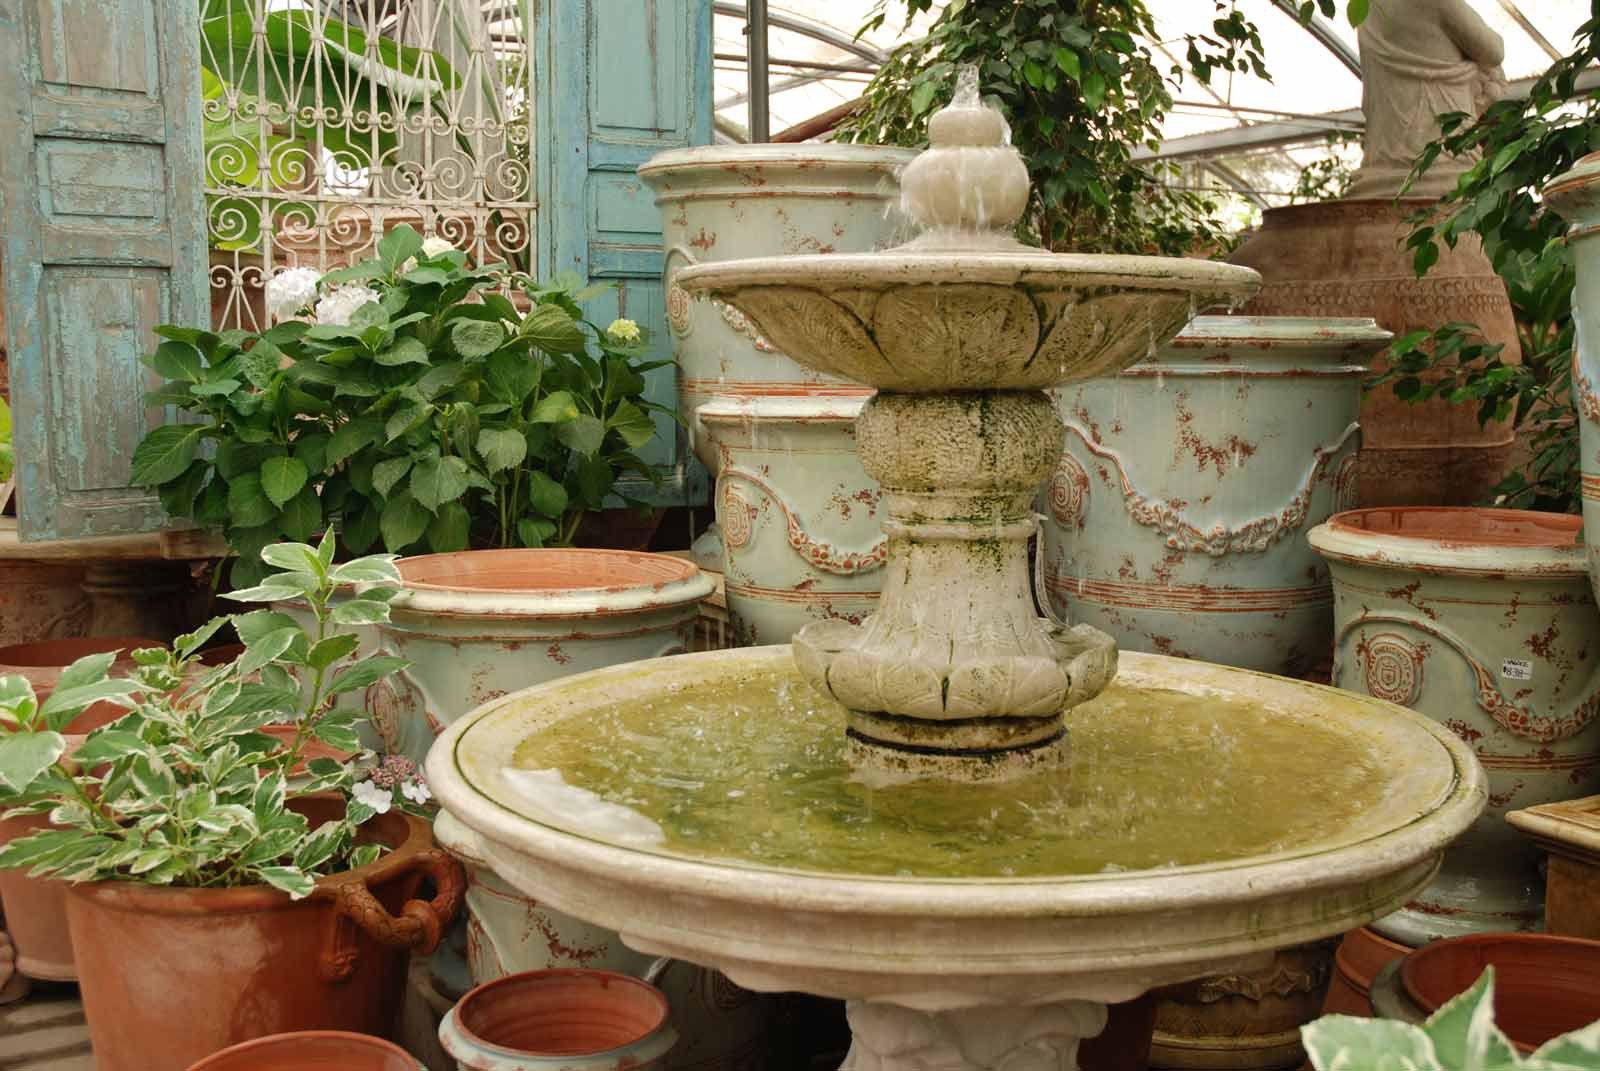 Astonishing European American Pottery Fountains Garden Furniture Evergreenethics Interior Chair Design Evergreenethicsorg